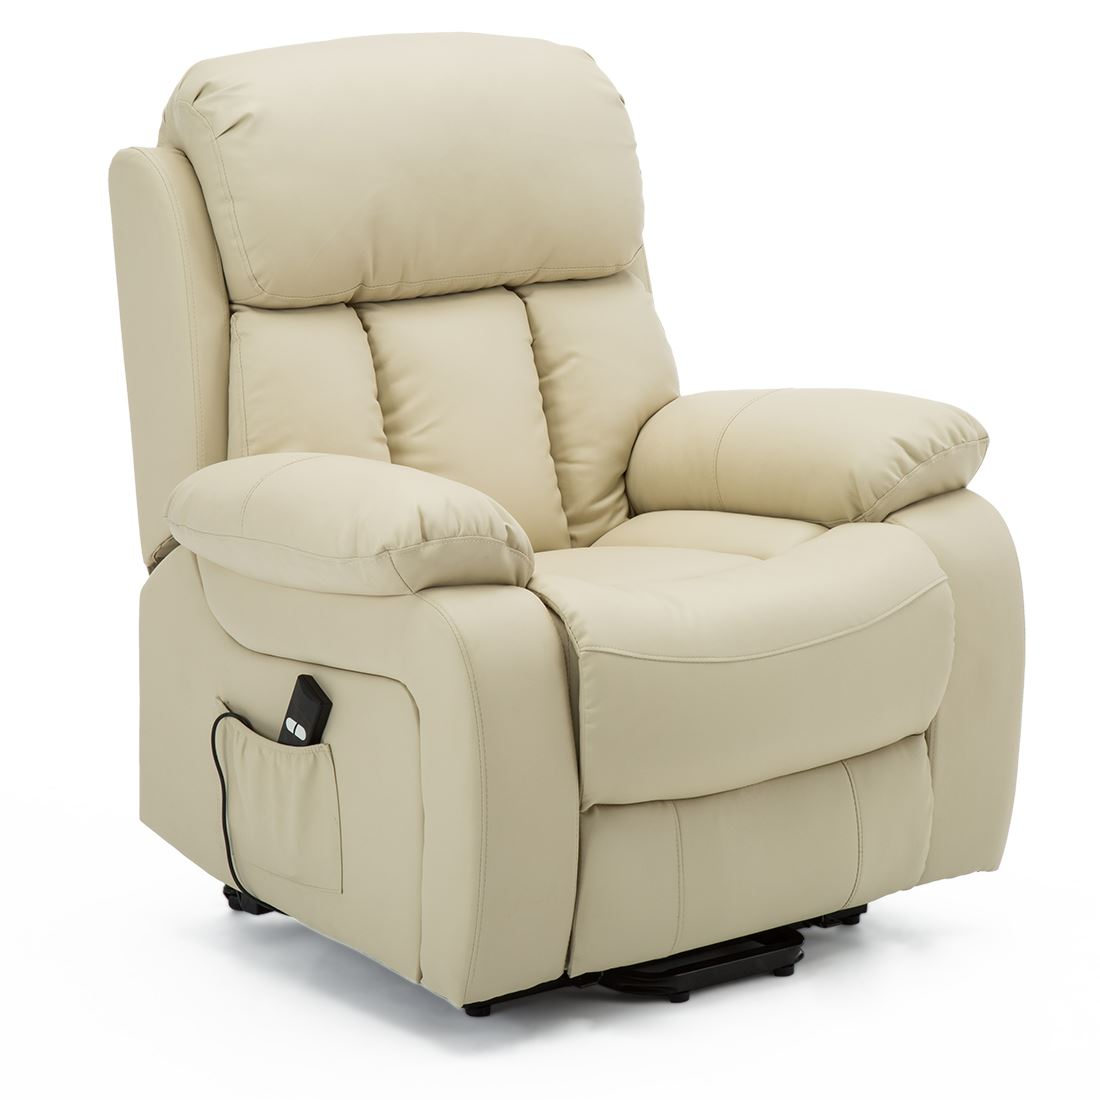 CHESTER-ELECTRIC-RISE-LEATHER-RECLINER-POWER-ARMCHAIR-HEATED-MASSAGE-SOFA-CHAIR thumbnail 21